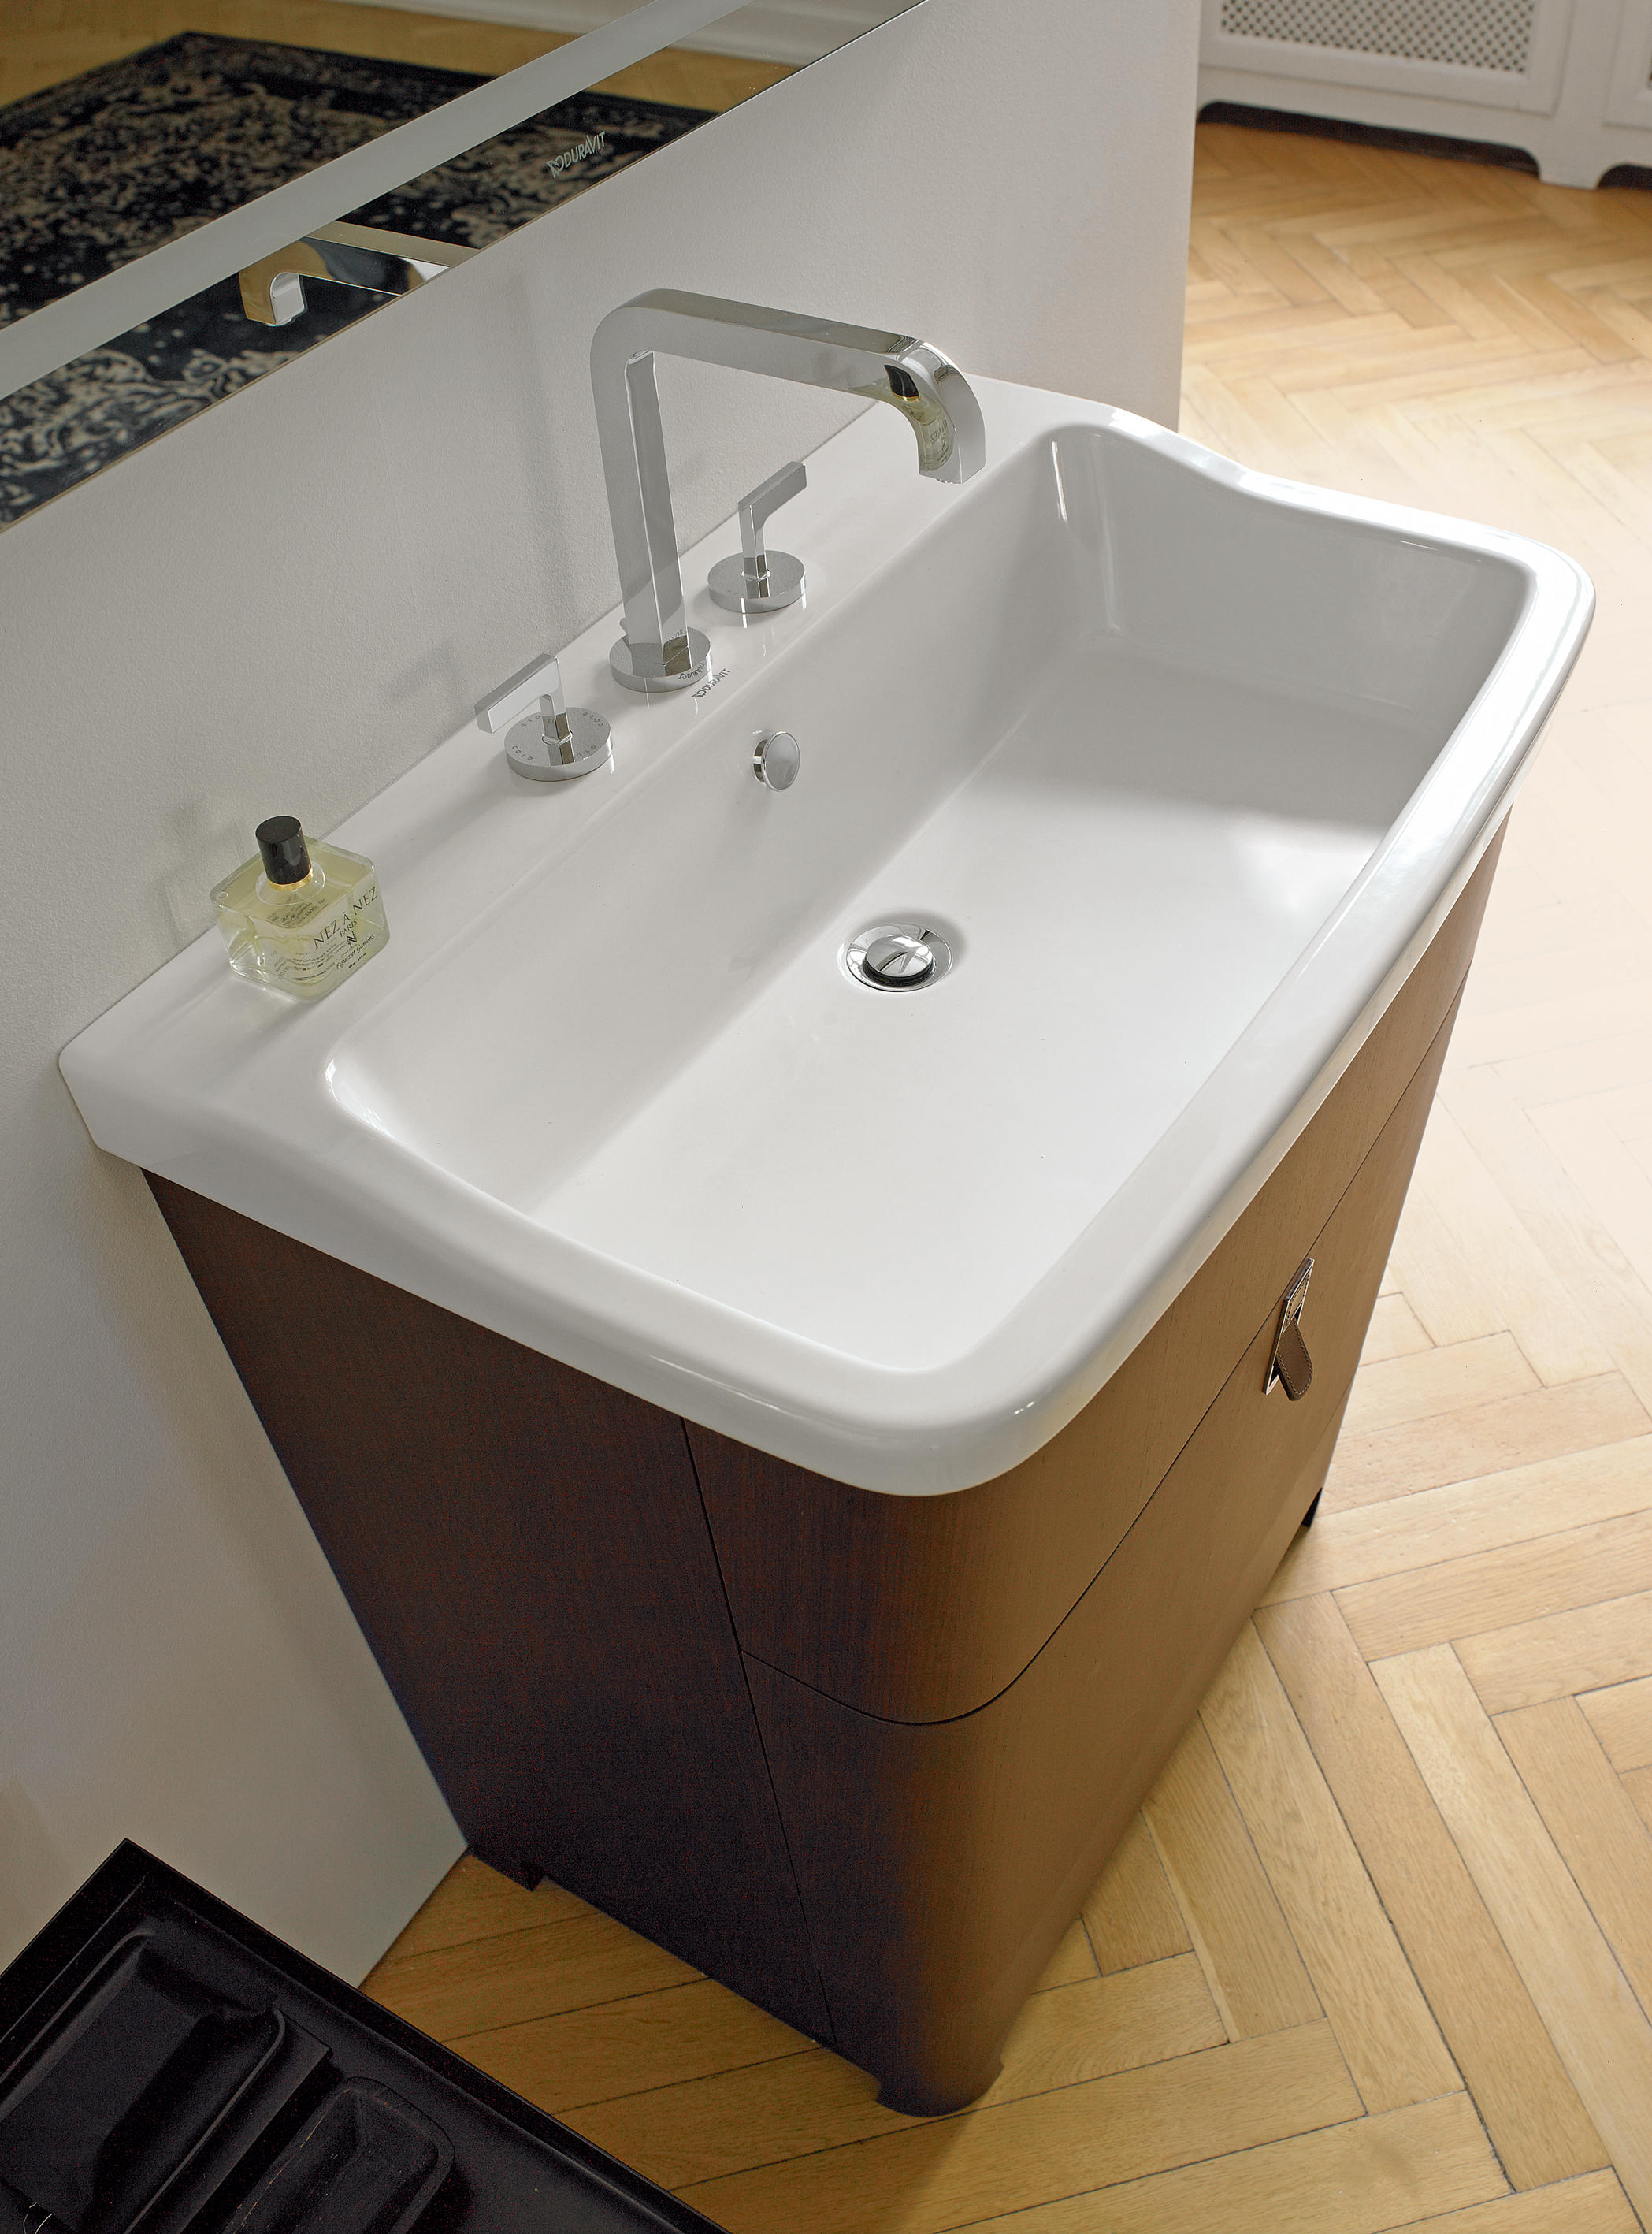 godmorgon ikea sink vanity conceptspace scola images is with duravit gb a sml ambt gallery pedestal